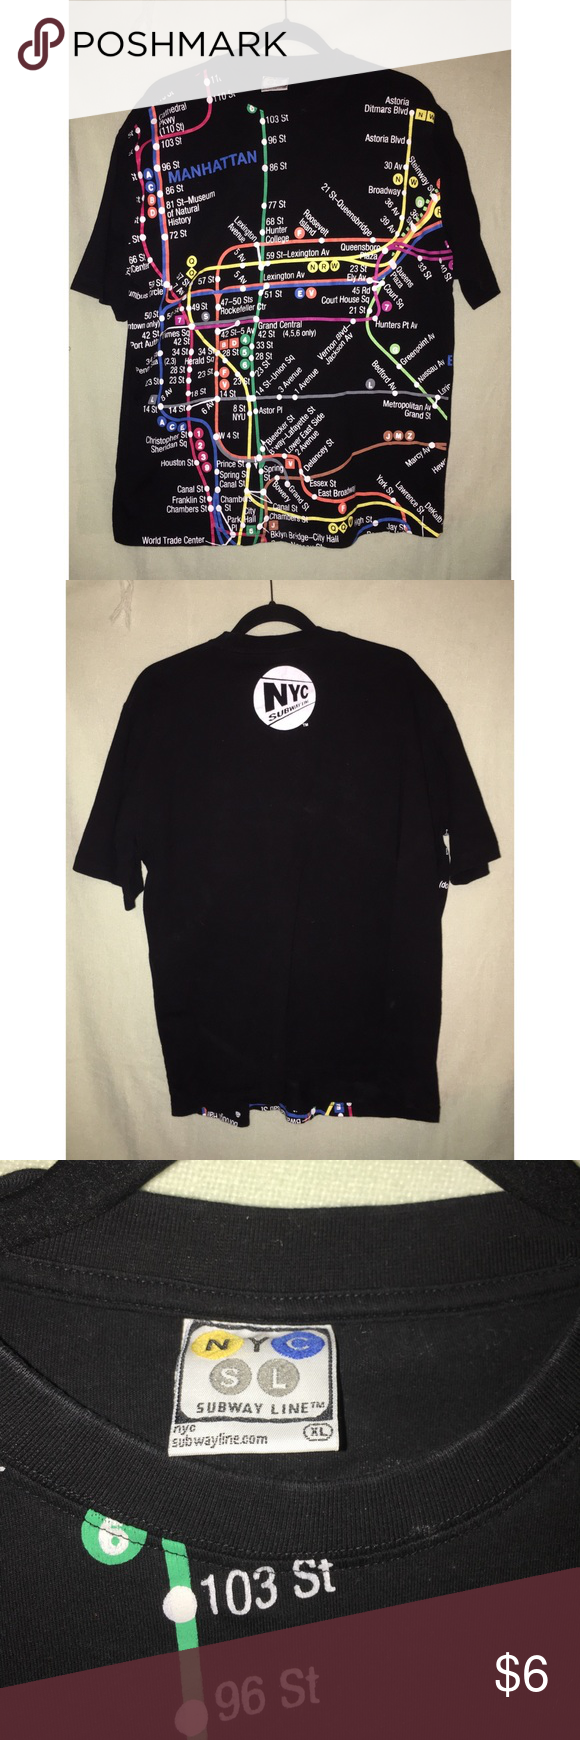 New York Subway Map Jumpers.Men S Xl Nyc Subway Graphic T Shirt Men S Xl New York Subway Map